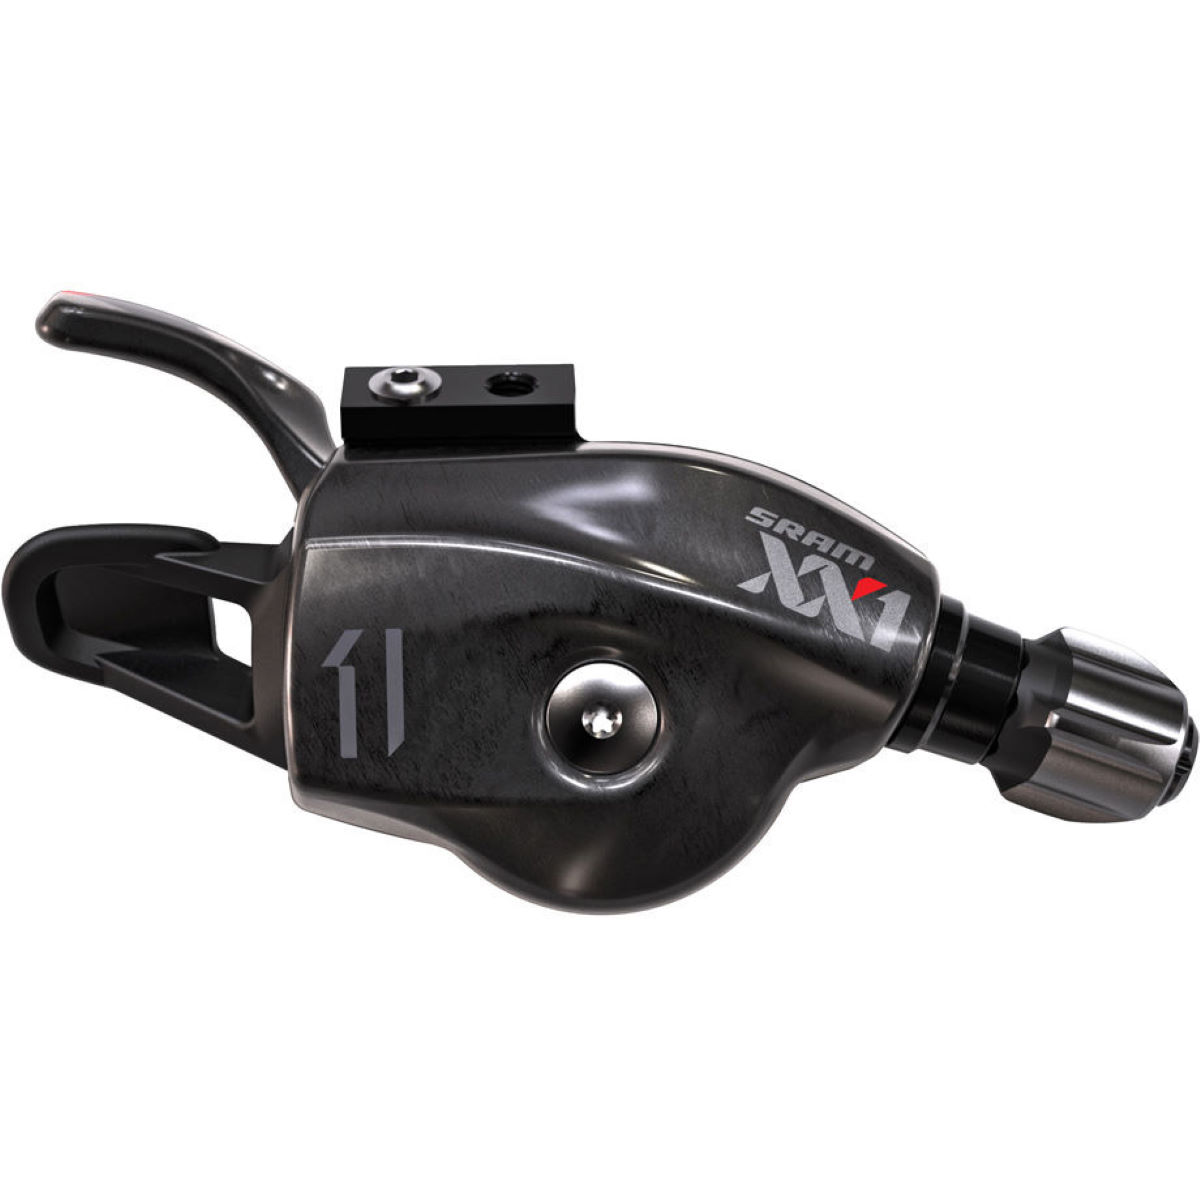 SRAM SRAM XX1 11 Speed Shifter with Discrete Clamp:Black 2:1   Gear Levers